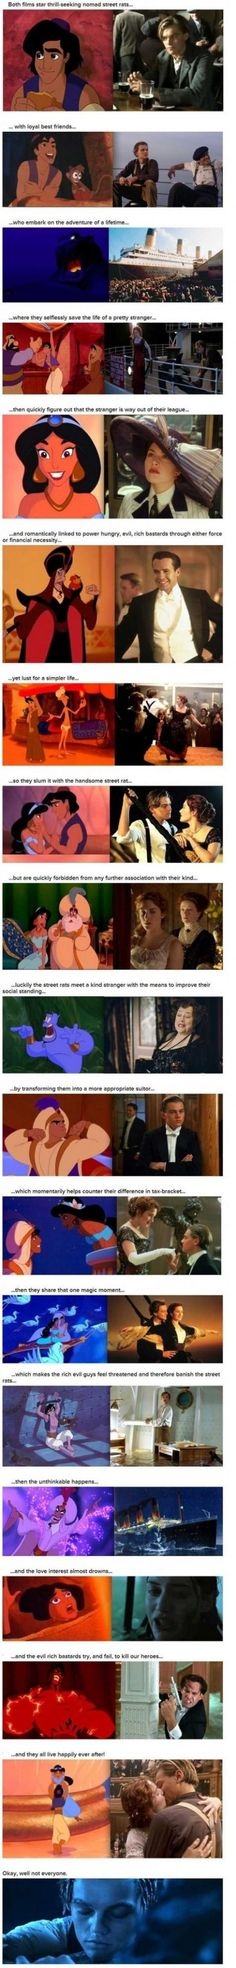 Aladdin Vs Titanic - Meme Picture.  Wow, the similarities....